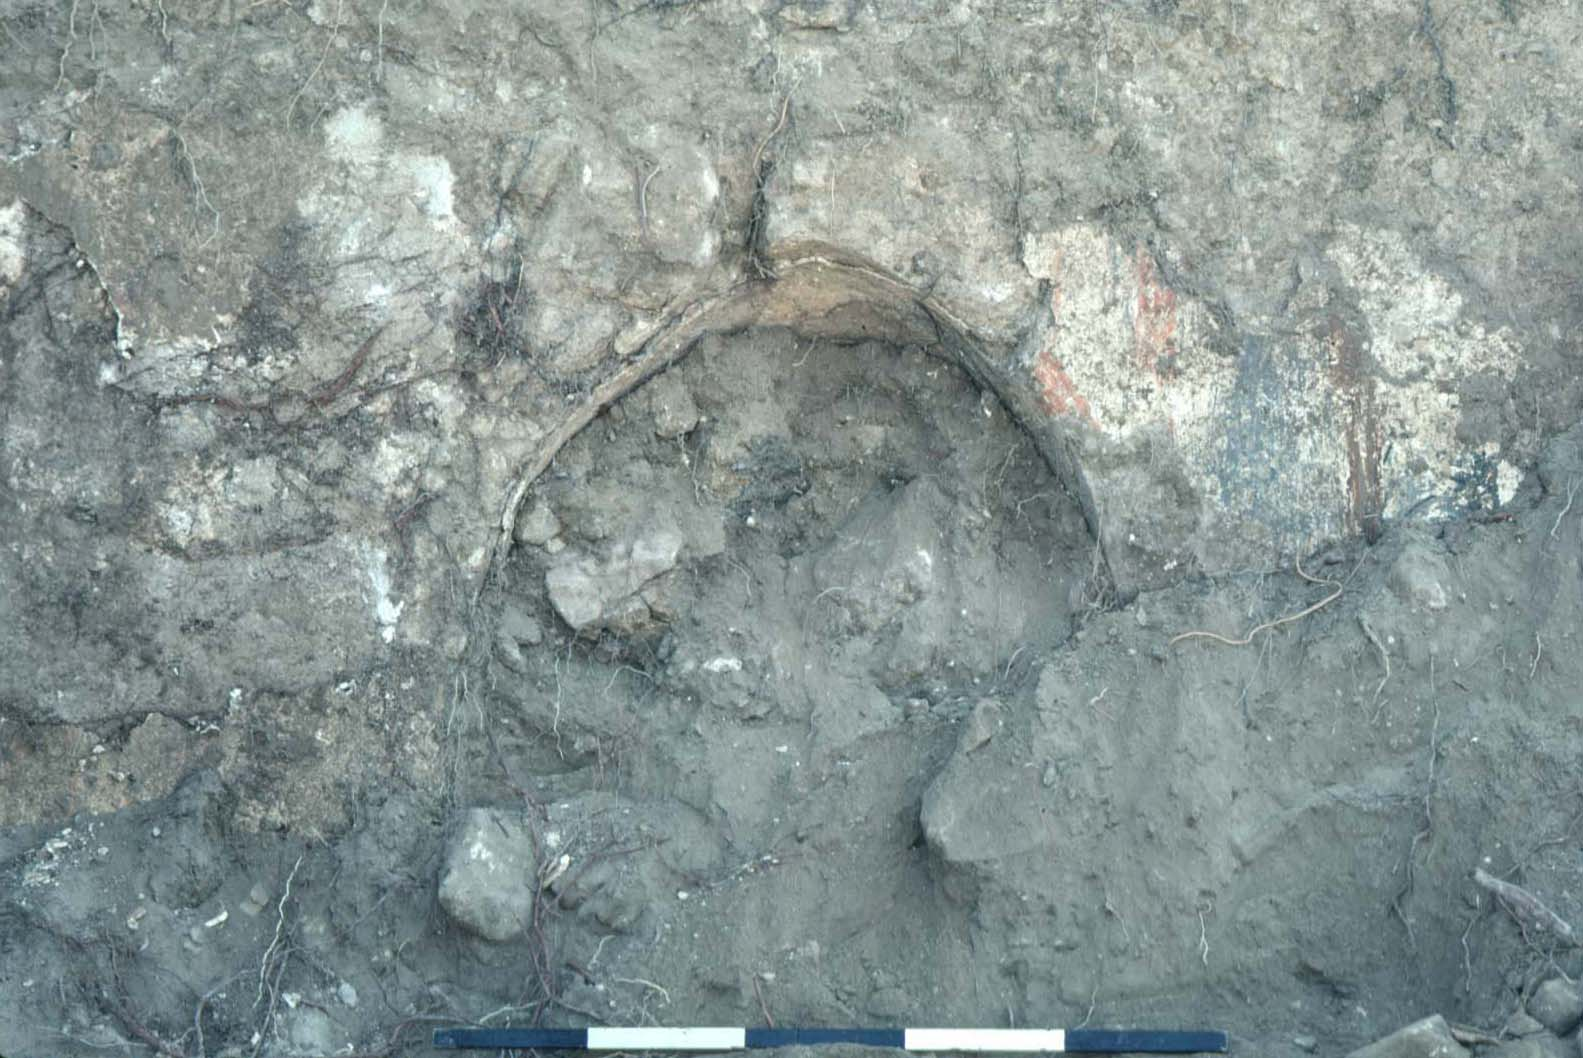 The first official photo of the excavation